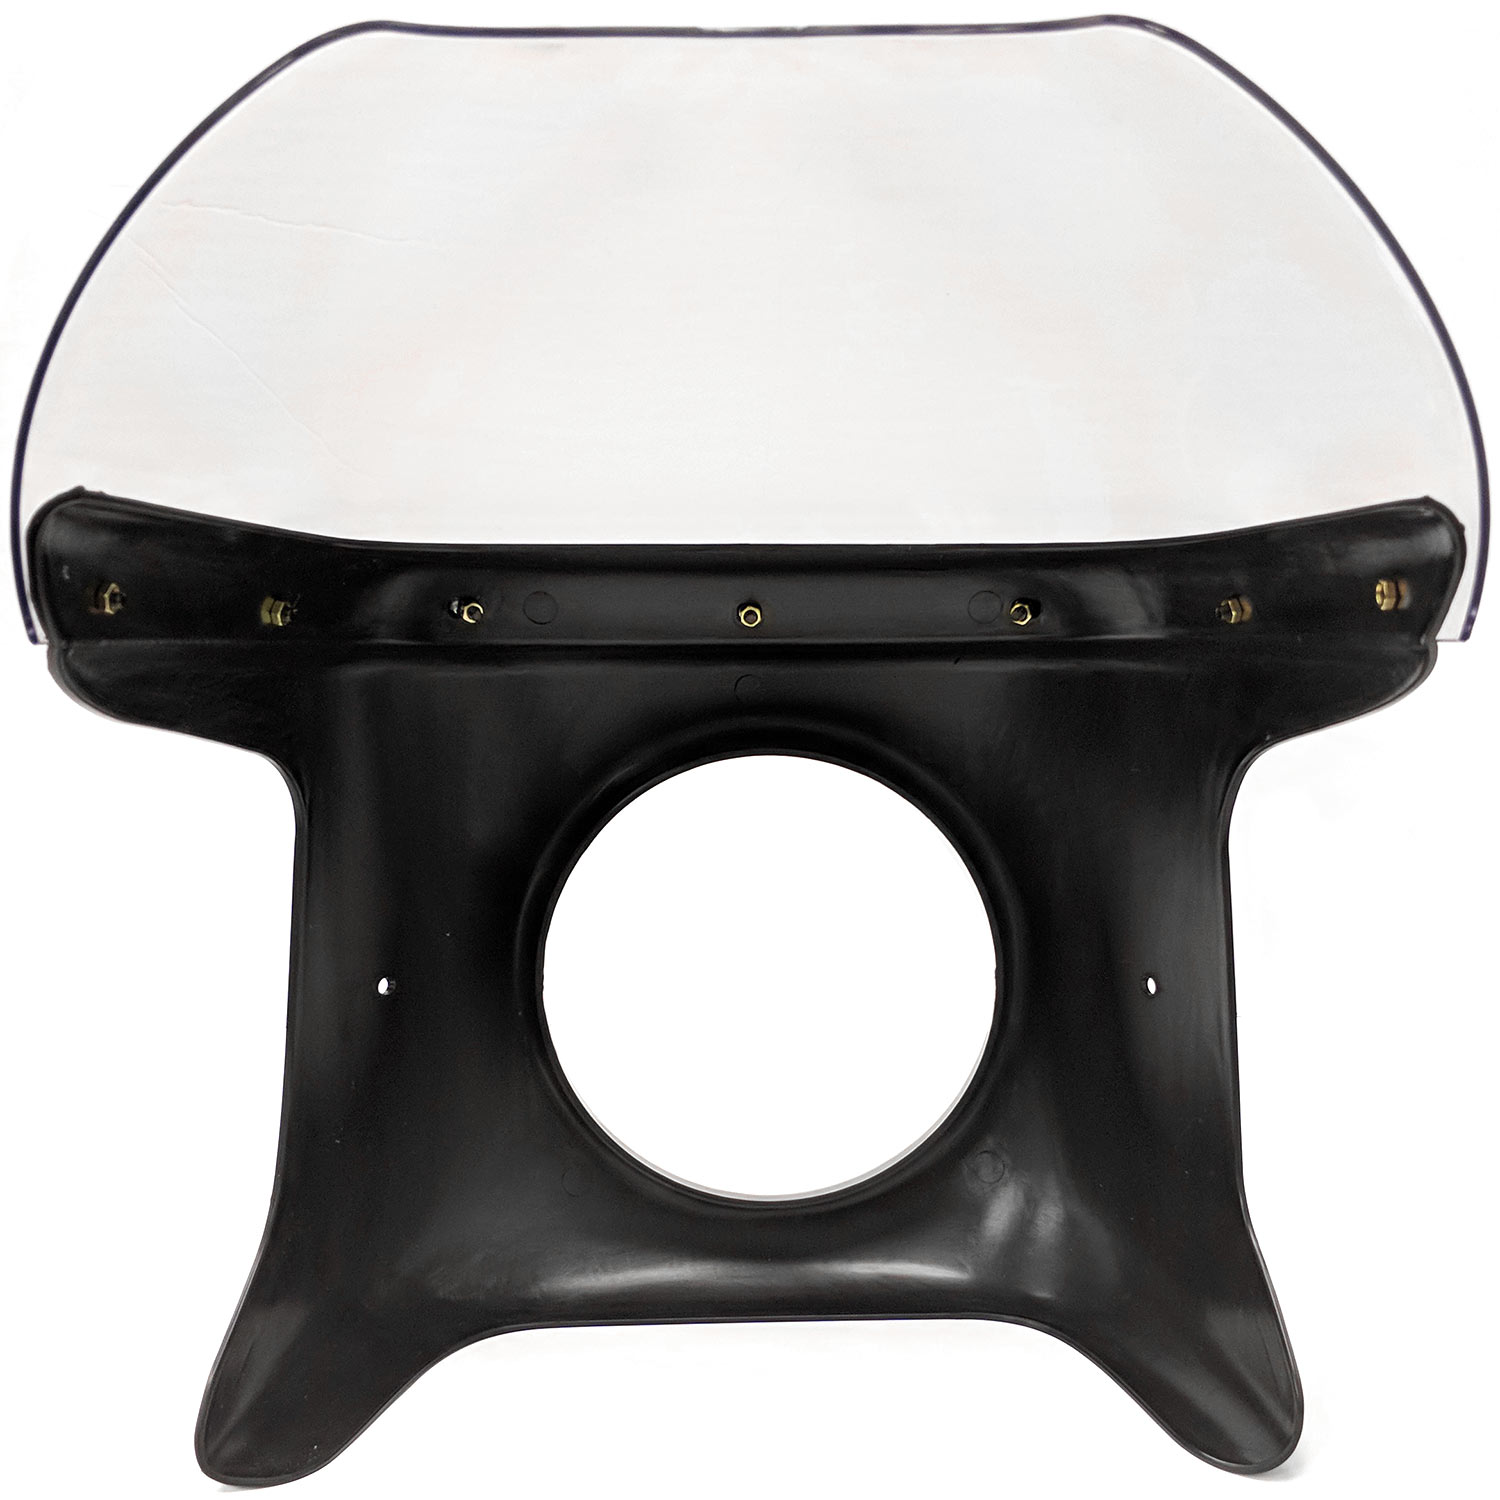 Krator Motorcycle 7 inch Headlight Fairing Screen Black & Clear for Kawsaki ZL 600 900 1000 Eliminator (Modification Maybe Required) - image 3 of 8